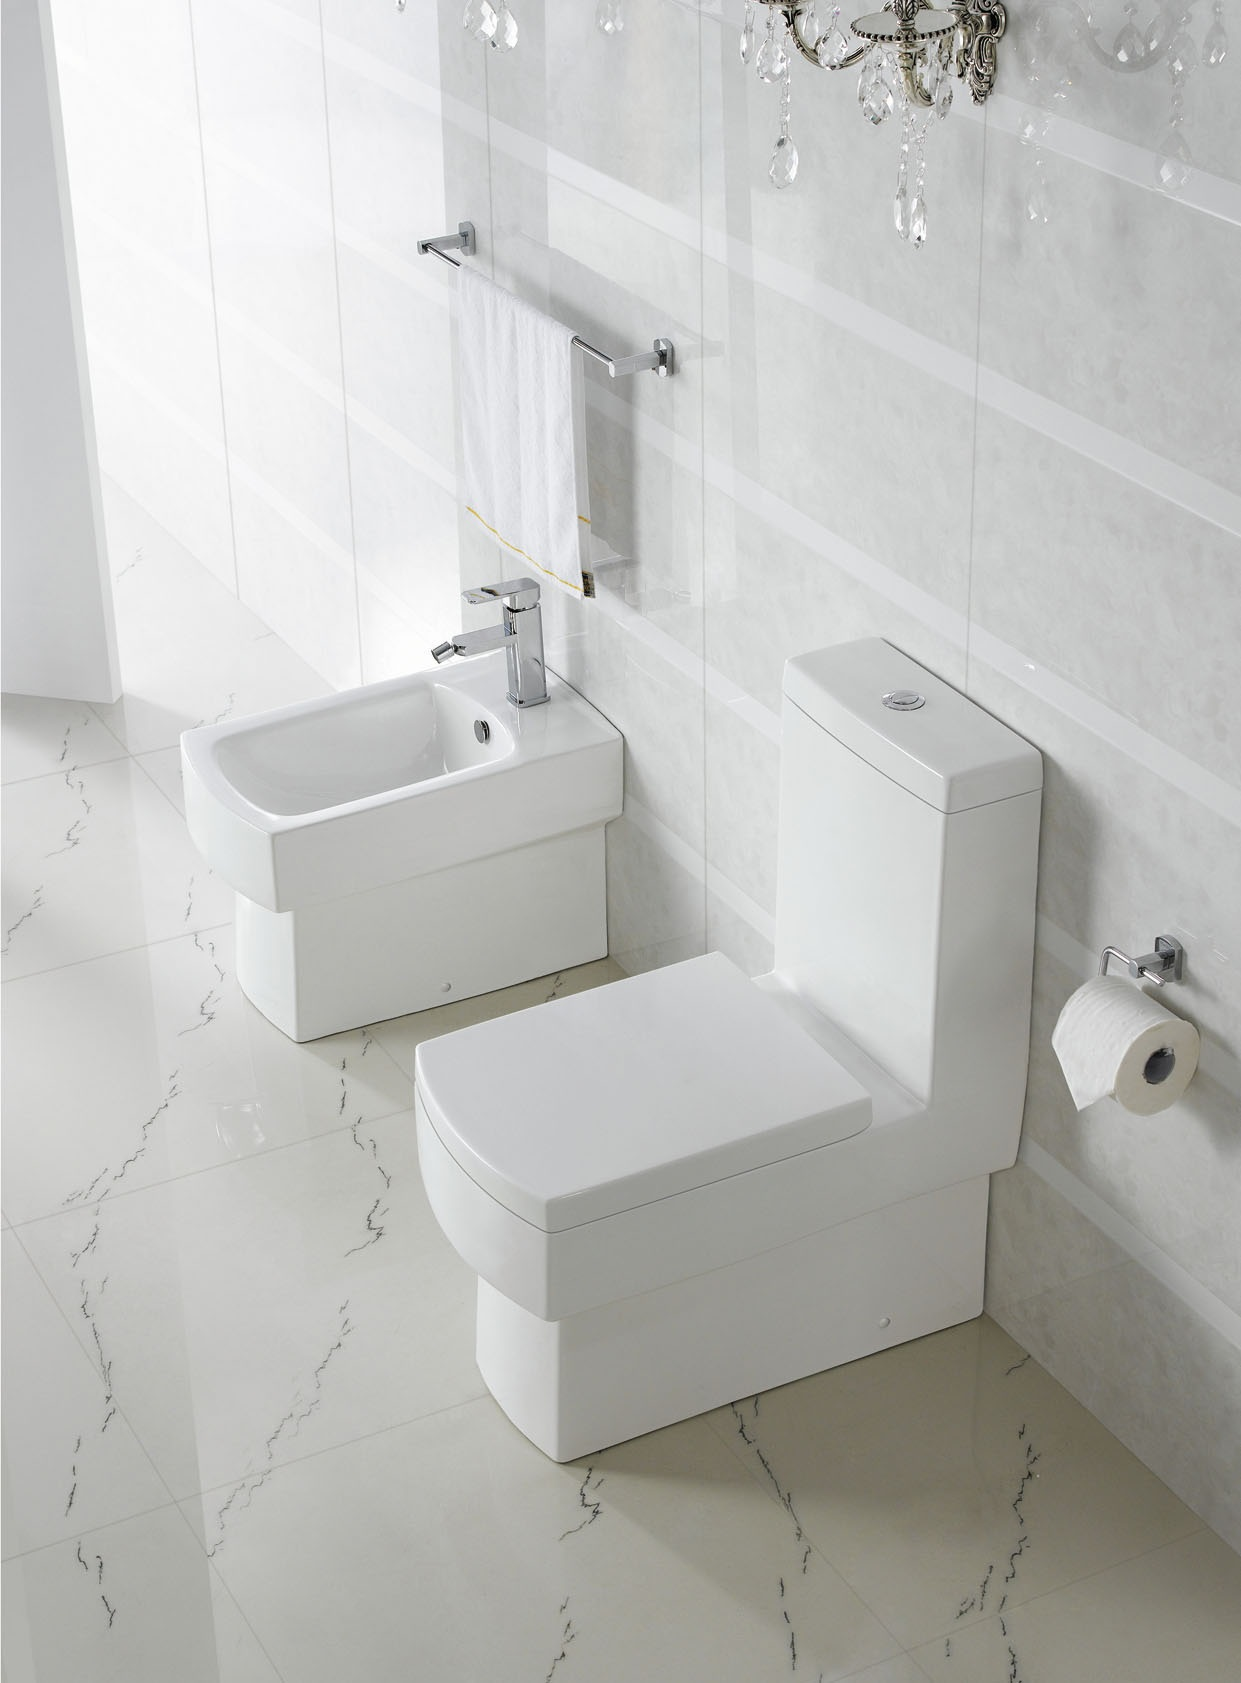 Modern toilet bathroom toilet one peice toilet dual flush france - Inodoros modernos ...